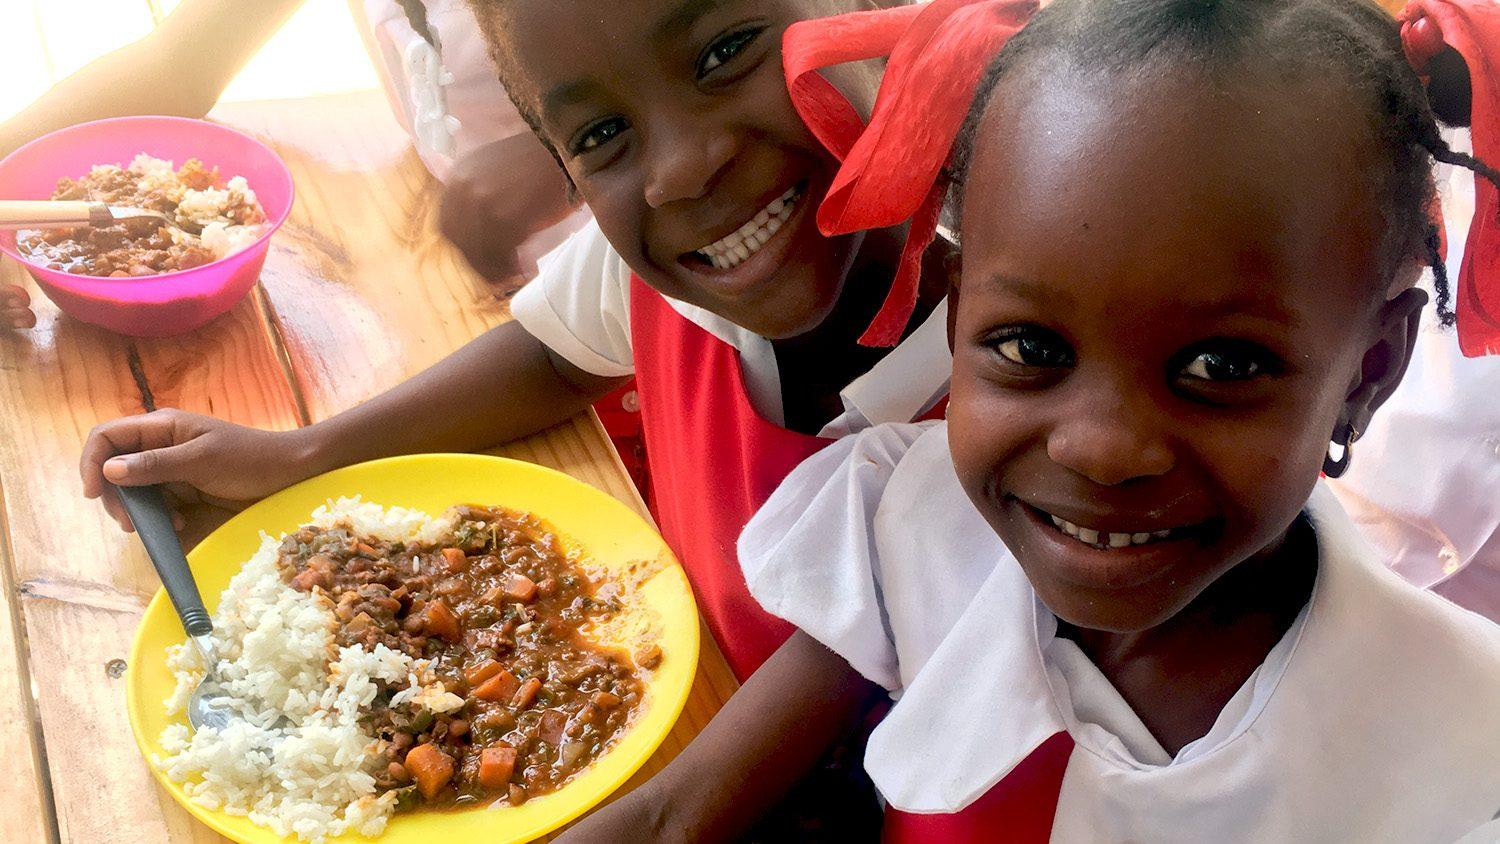 Haitian children eating lunch via the NCSU Haiti Goat Project